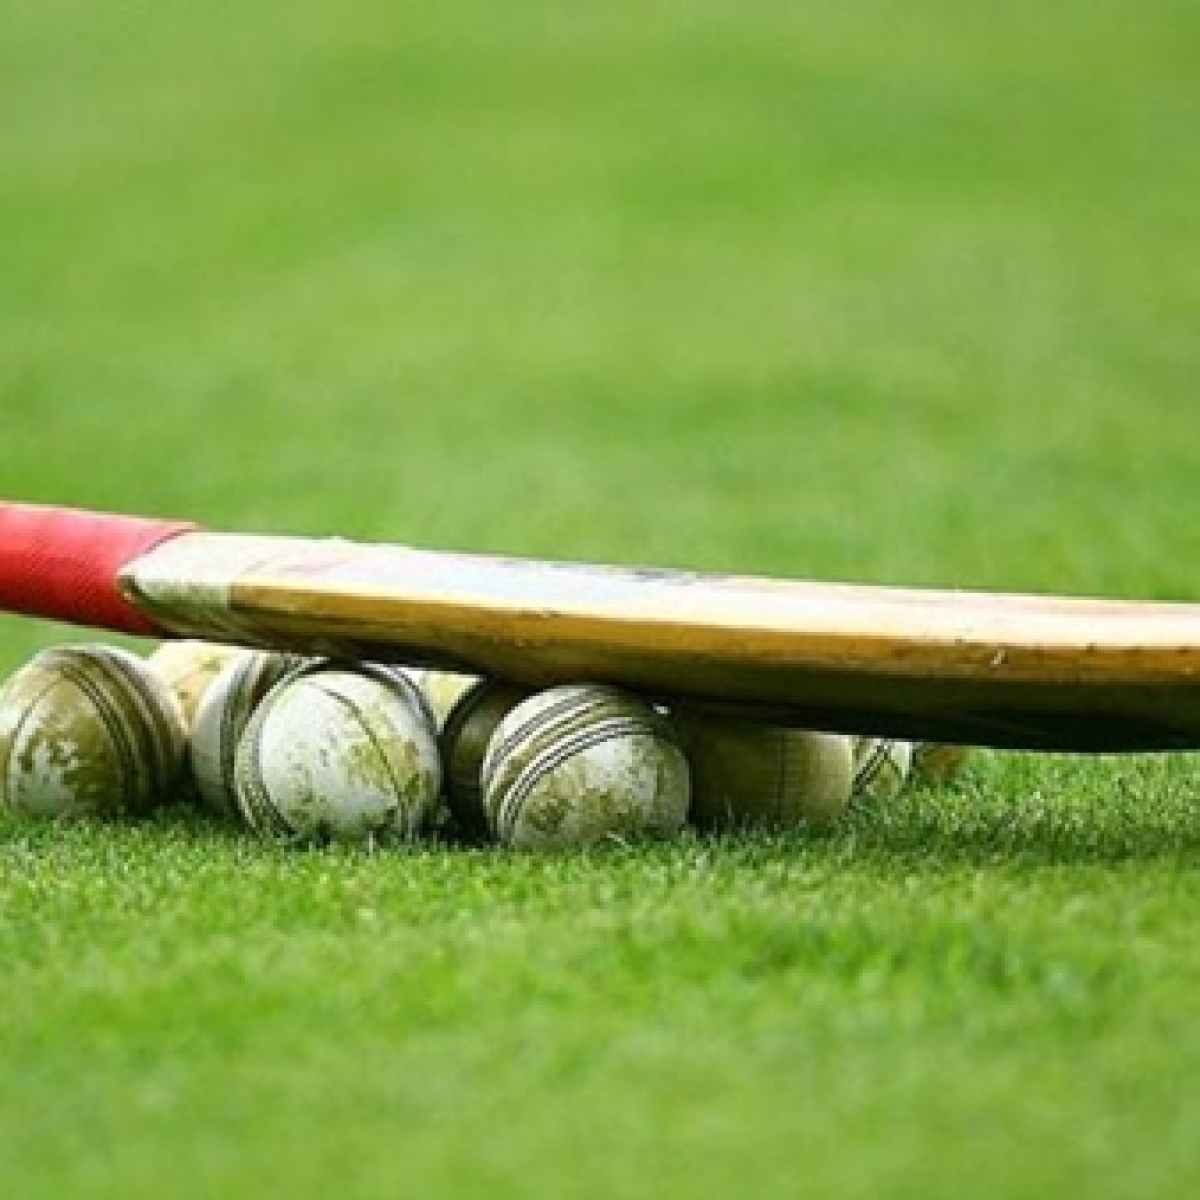 Cricket in times of COVID-19: Asia Cup 2020 postponed until June 21